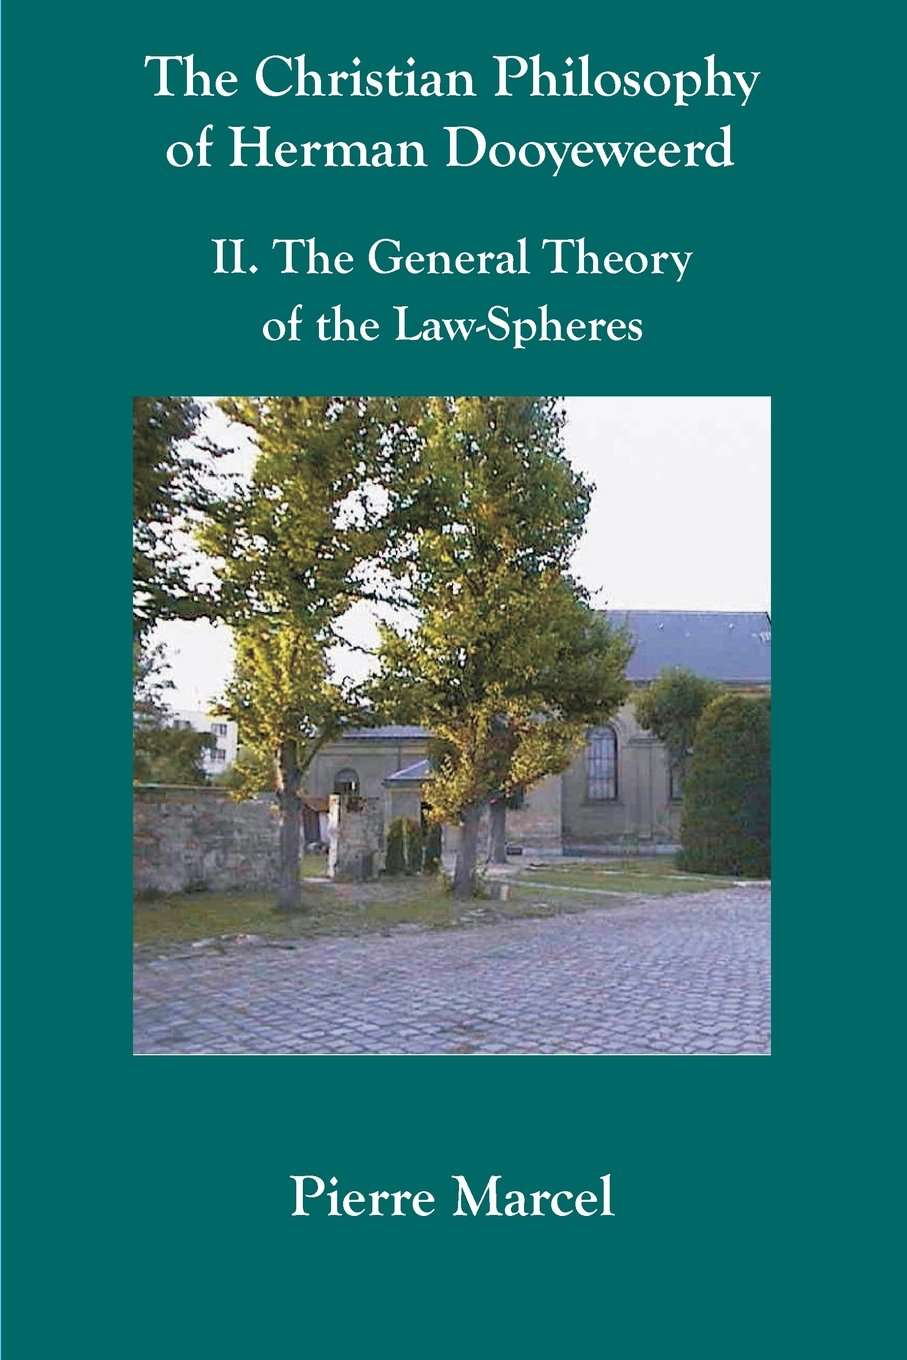 Read Online The Christian Philosophy of Herman Dooyeweerd: II. the General Theory of the Law-Spheres PDF